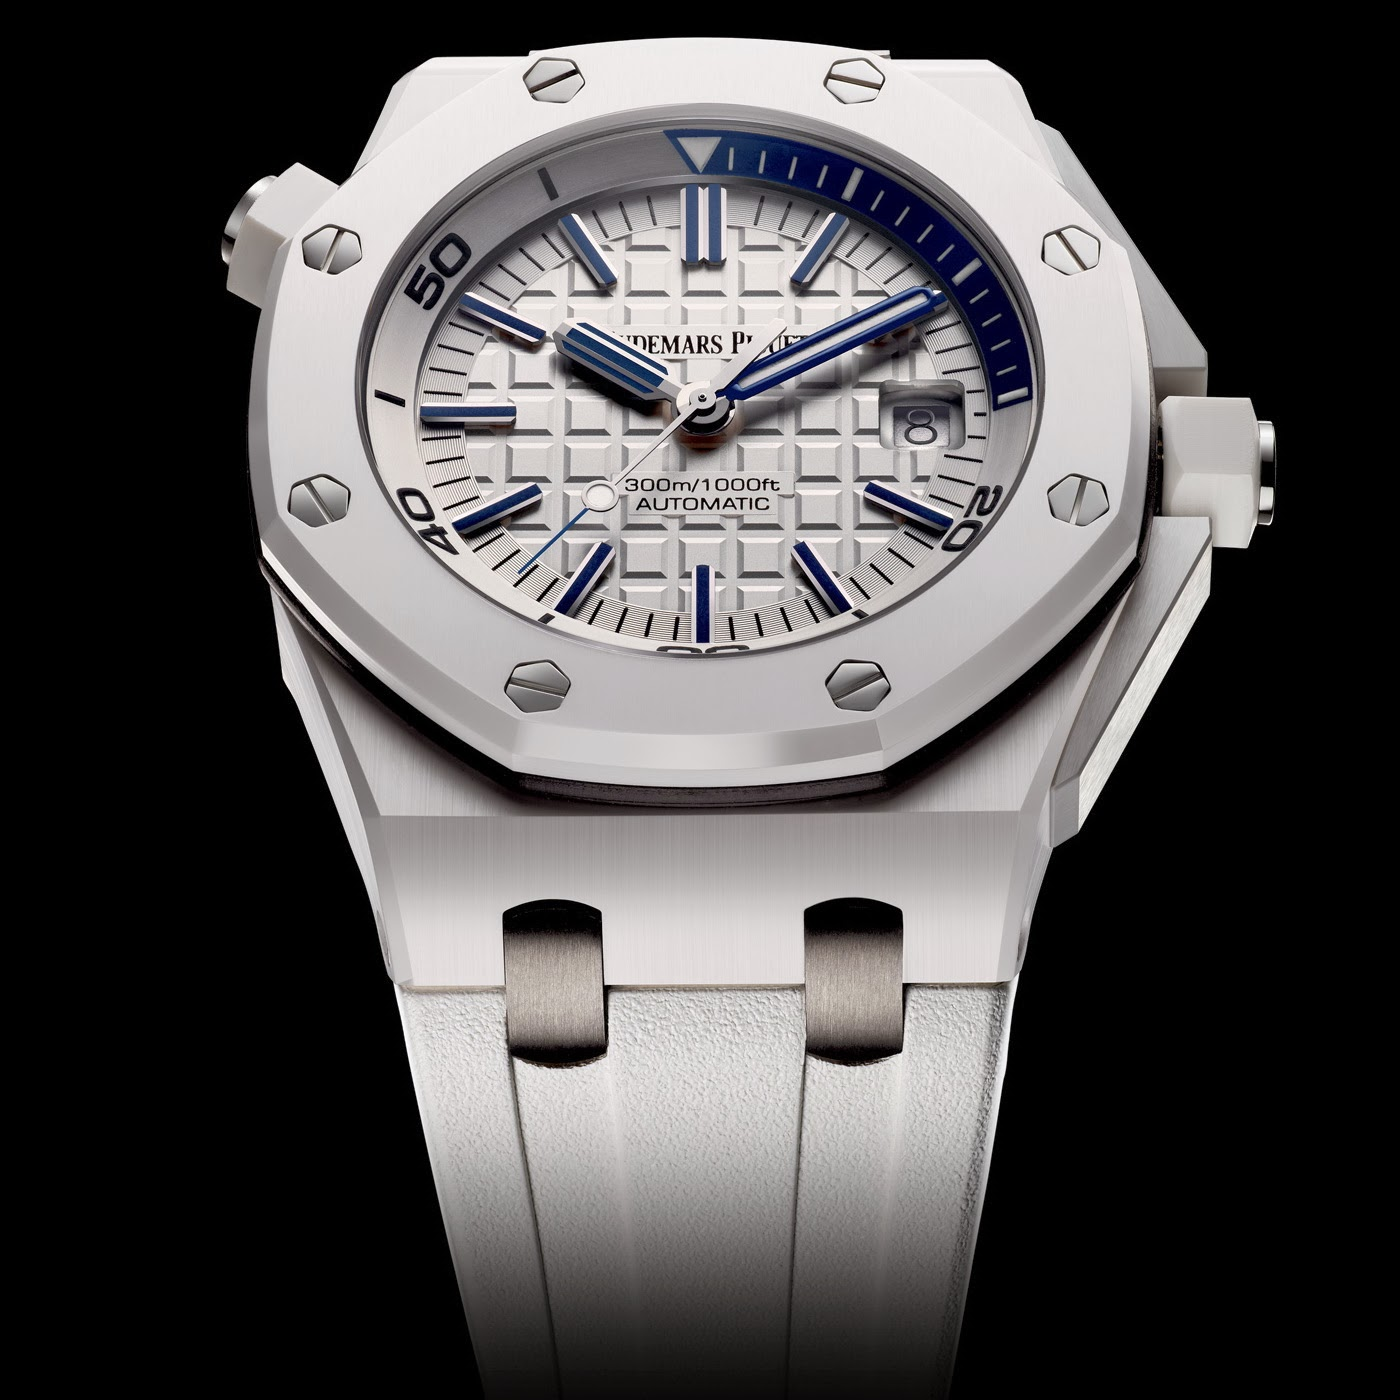 White Ceramic Audemars Piguet Royal Oak Offshore Diver replica